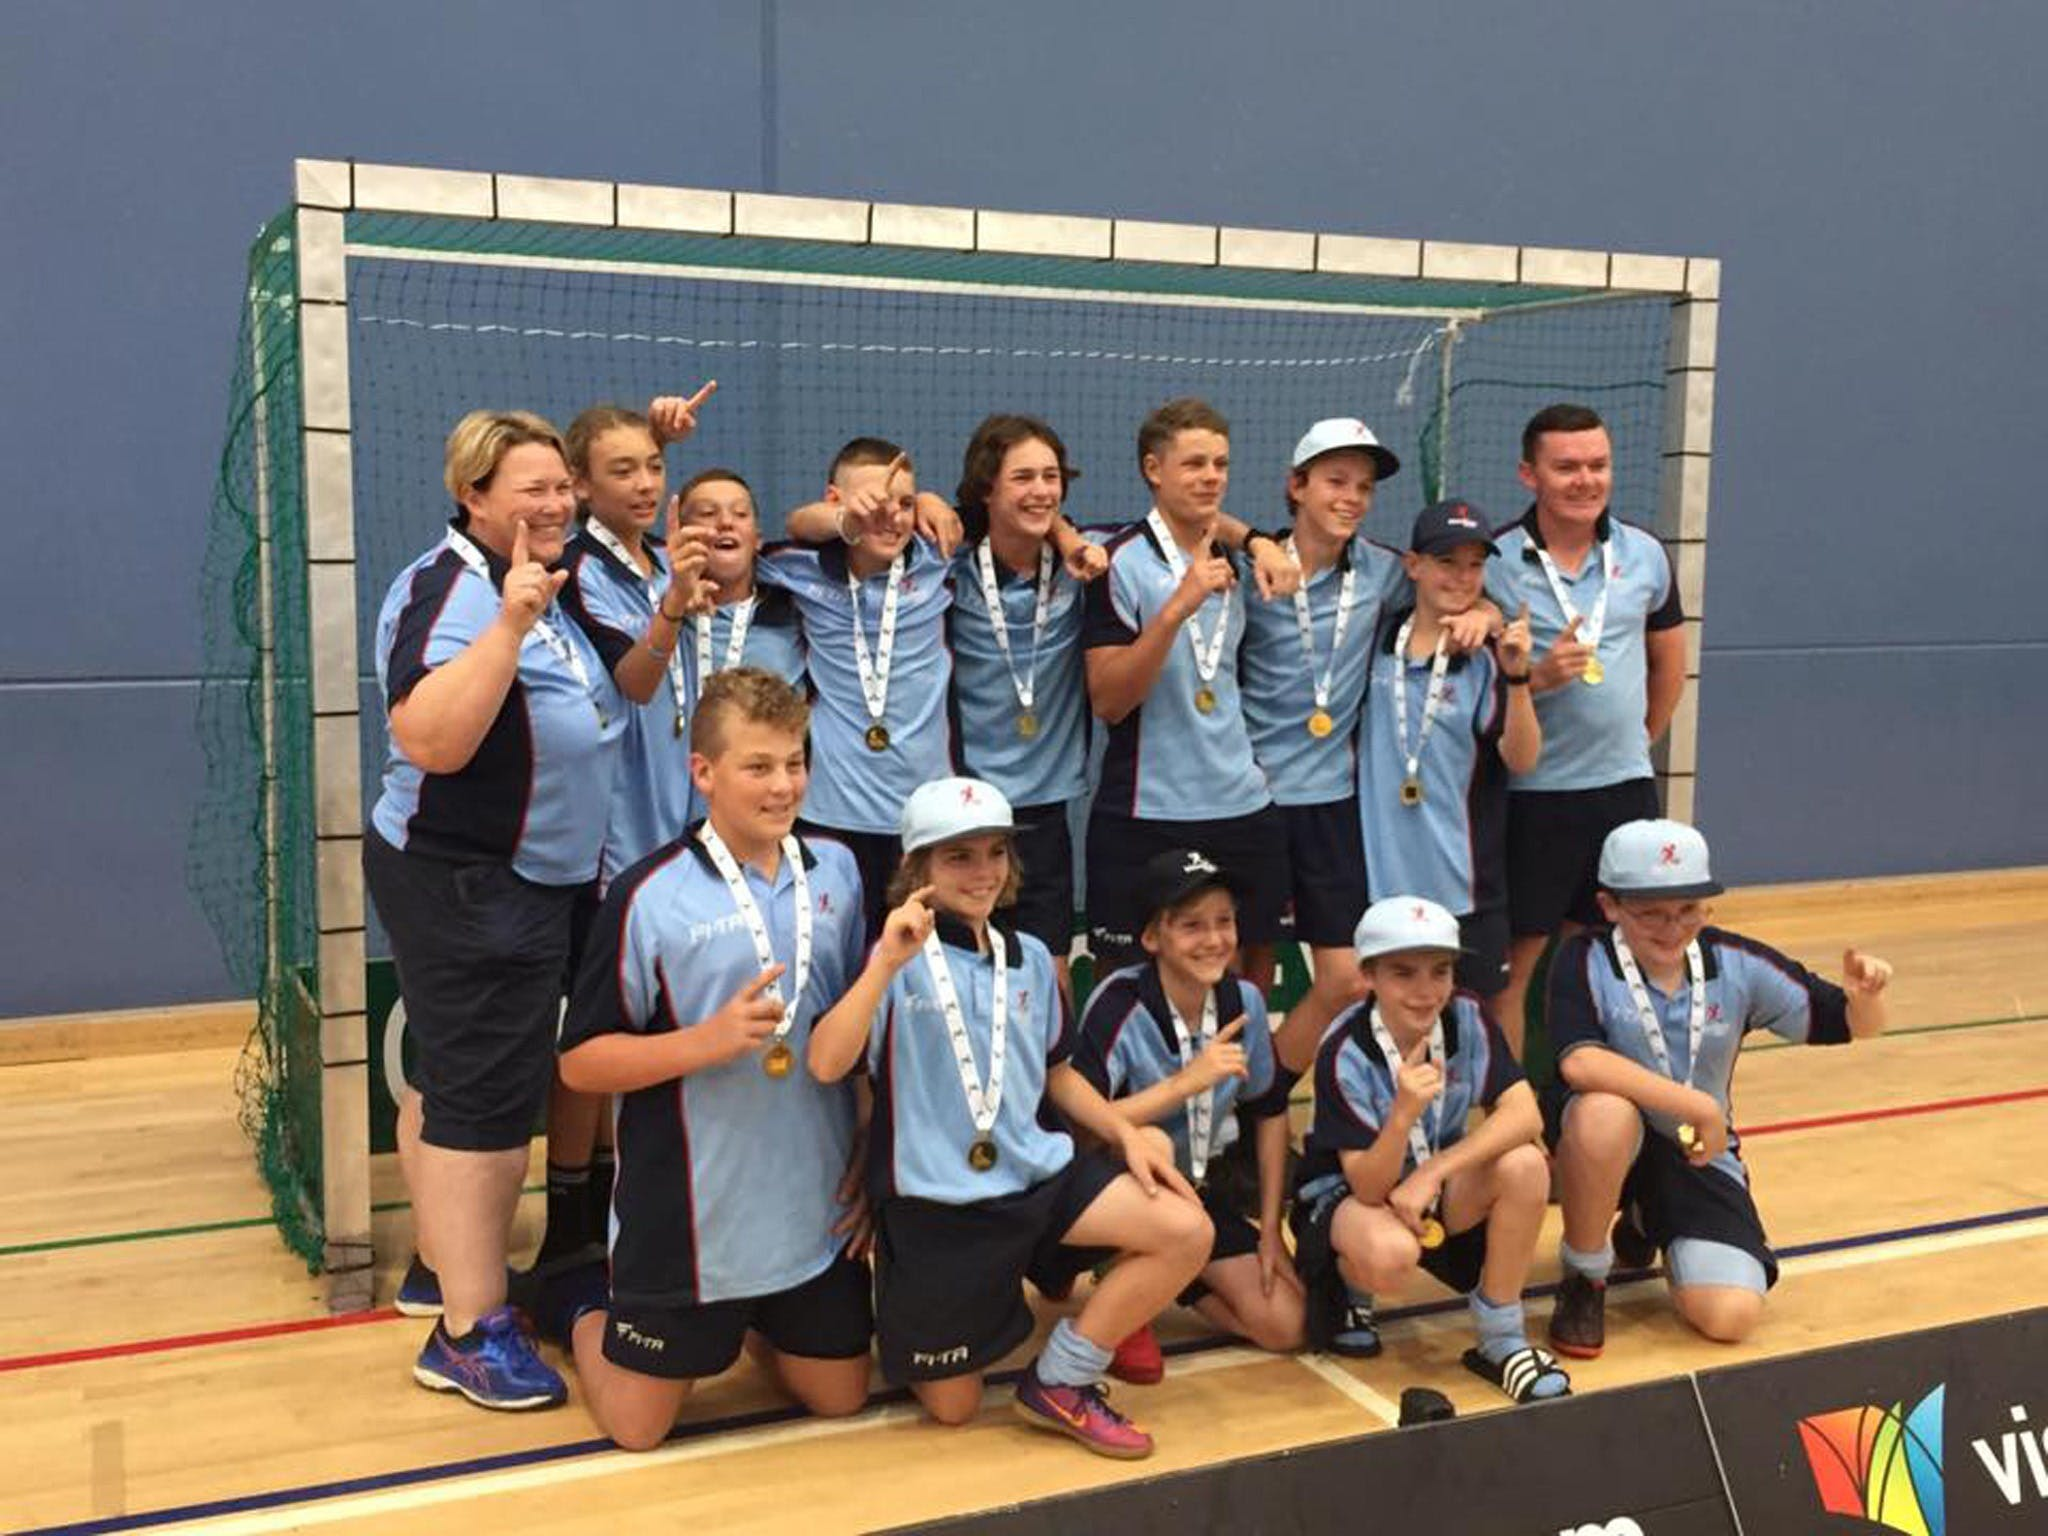 Hockey NSW Indoor State Championship  Under 18 Boys - Accommodation Tasmania